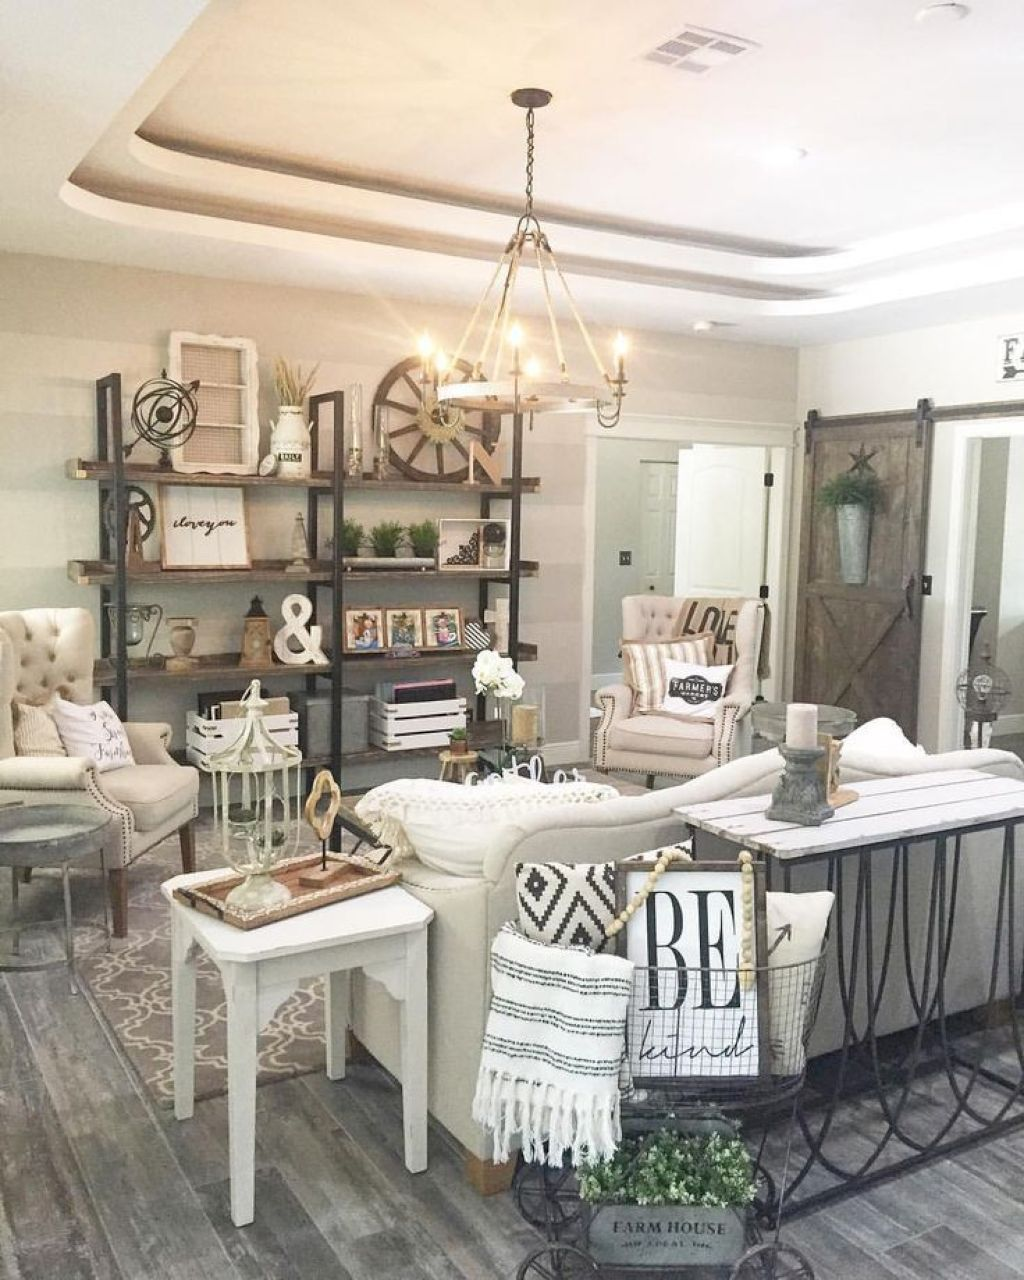 30 Rustic Farmhouse Living Room Design and Decor Ideas for